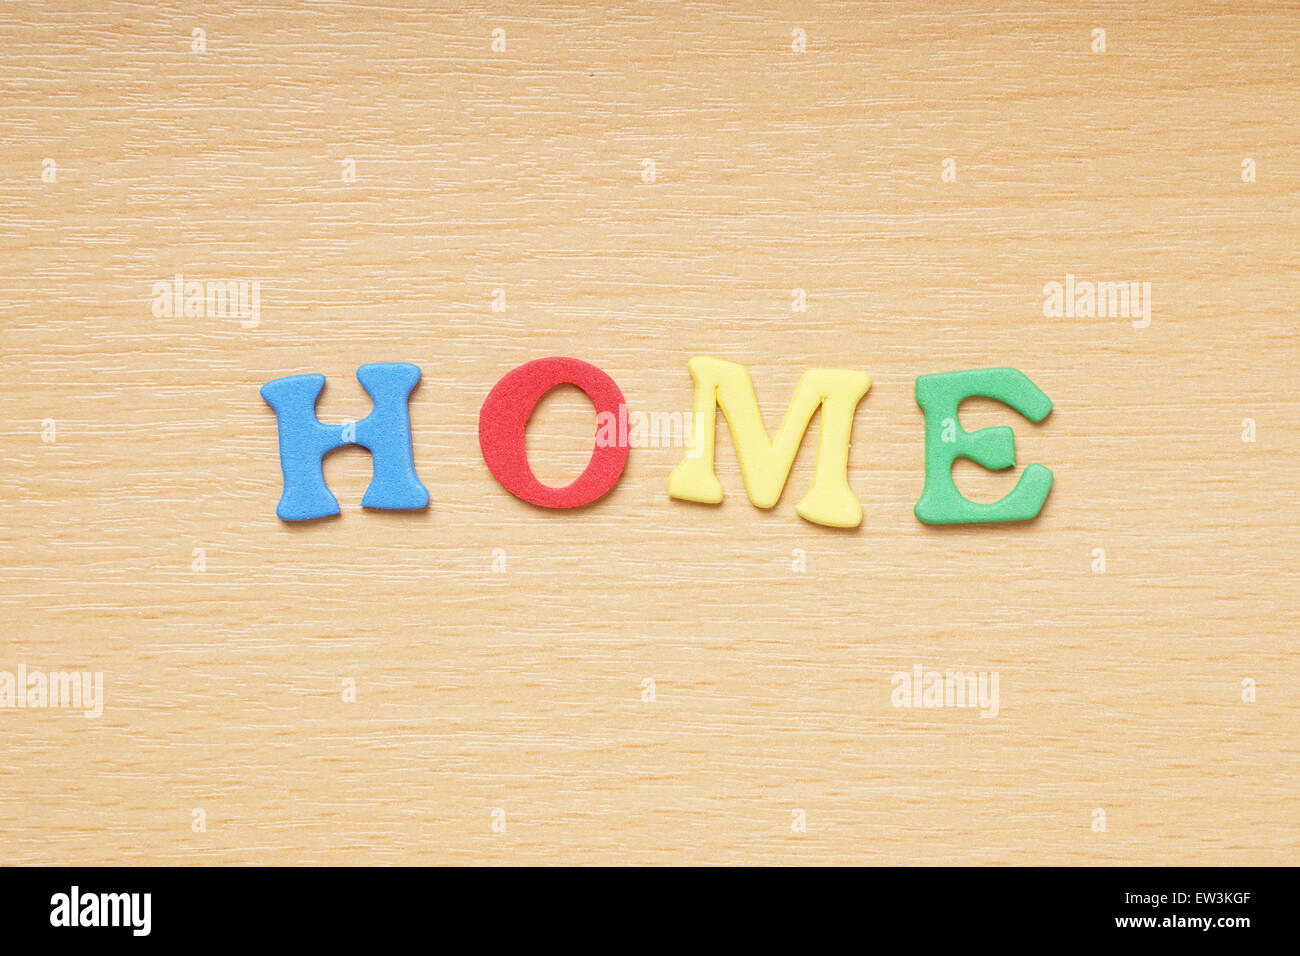 home in foam rubber letters - Stock Image